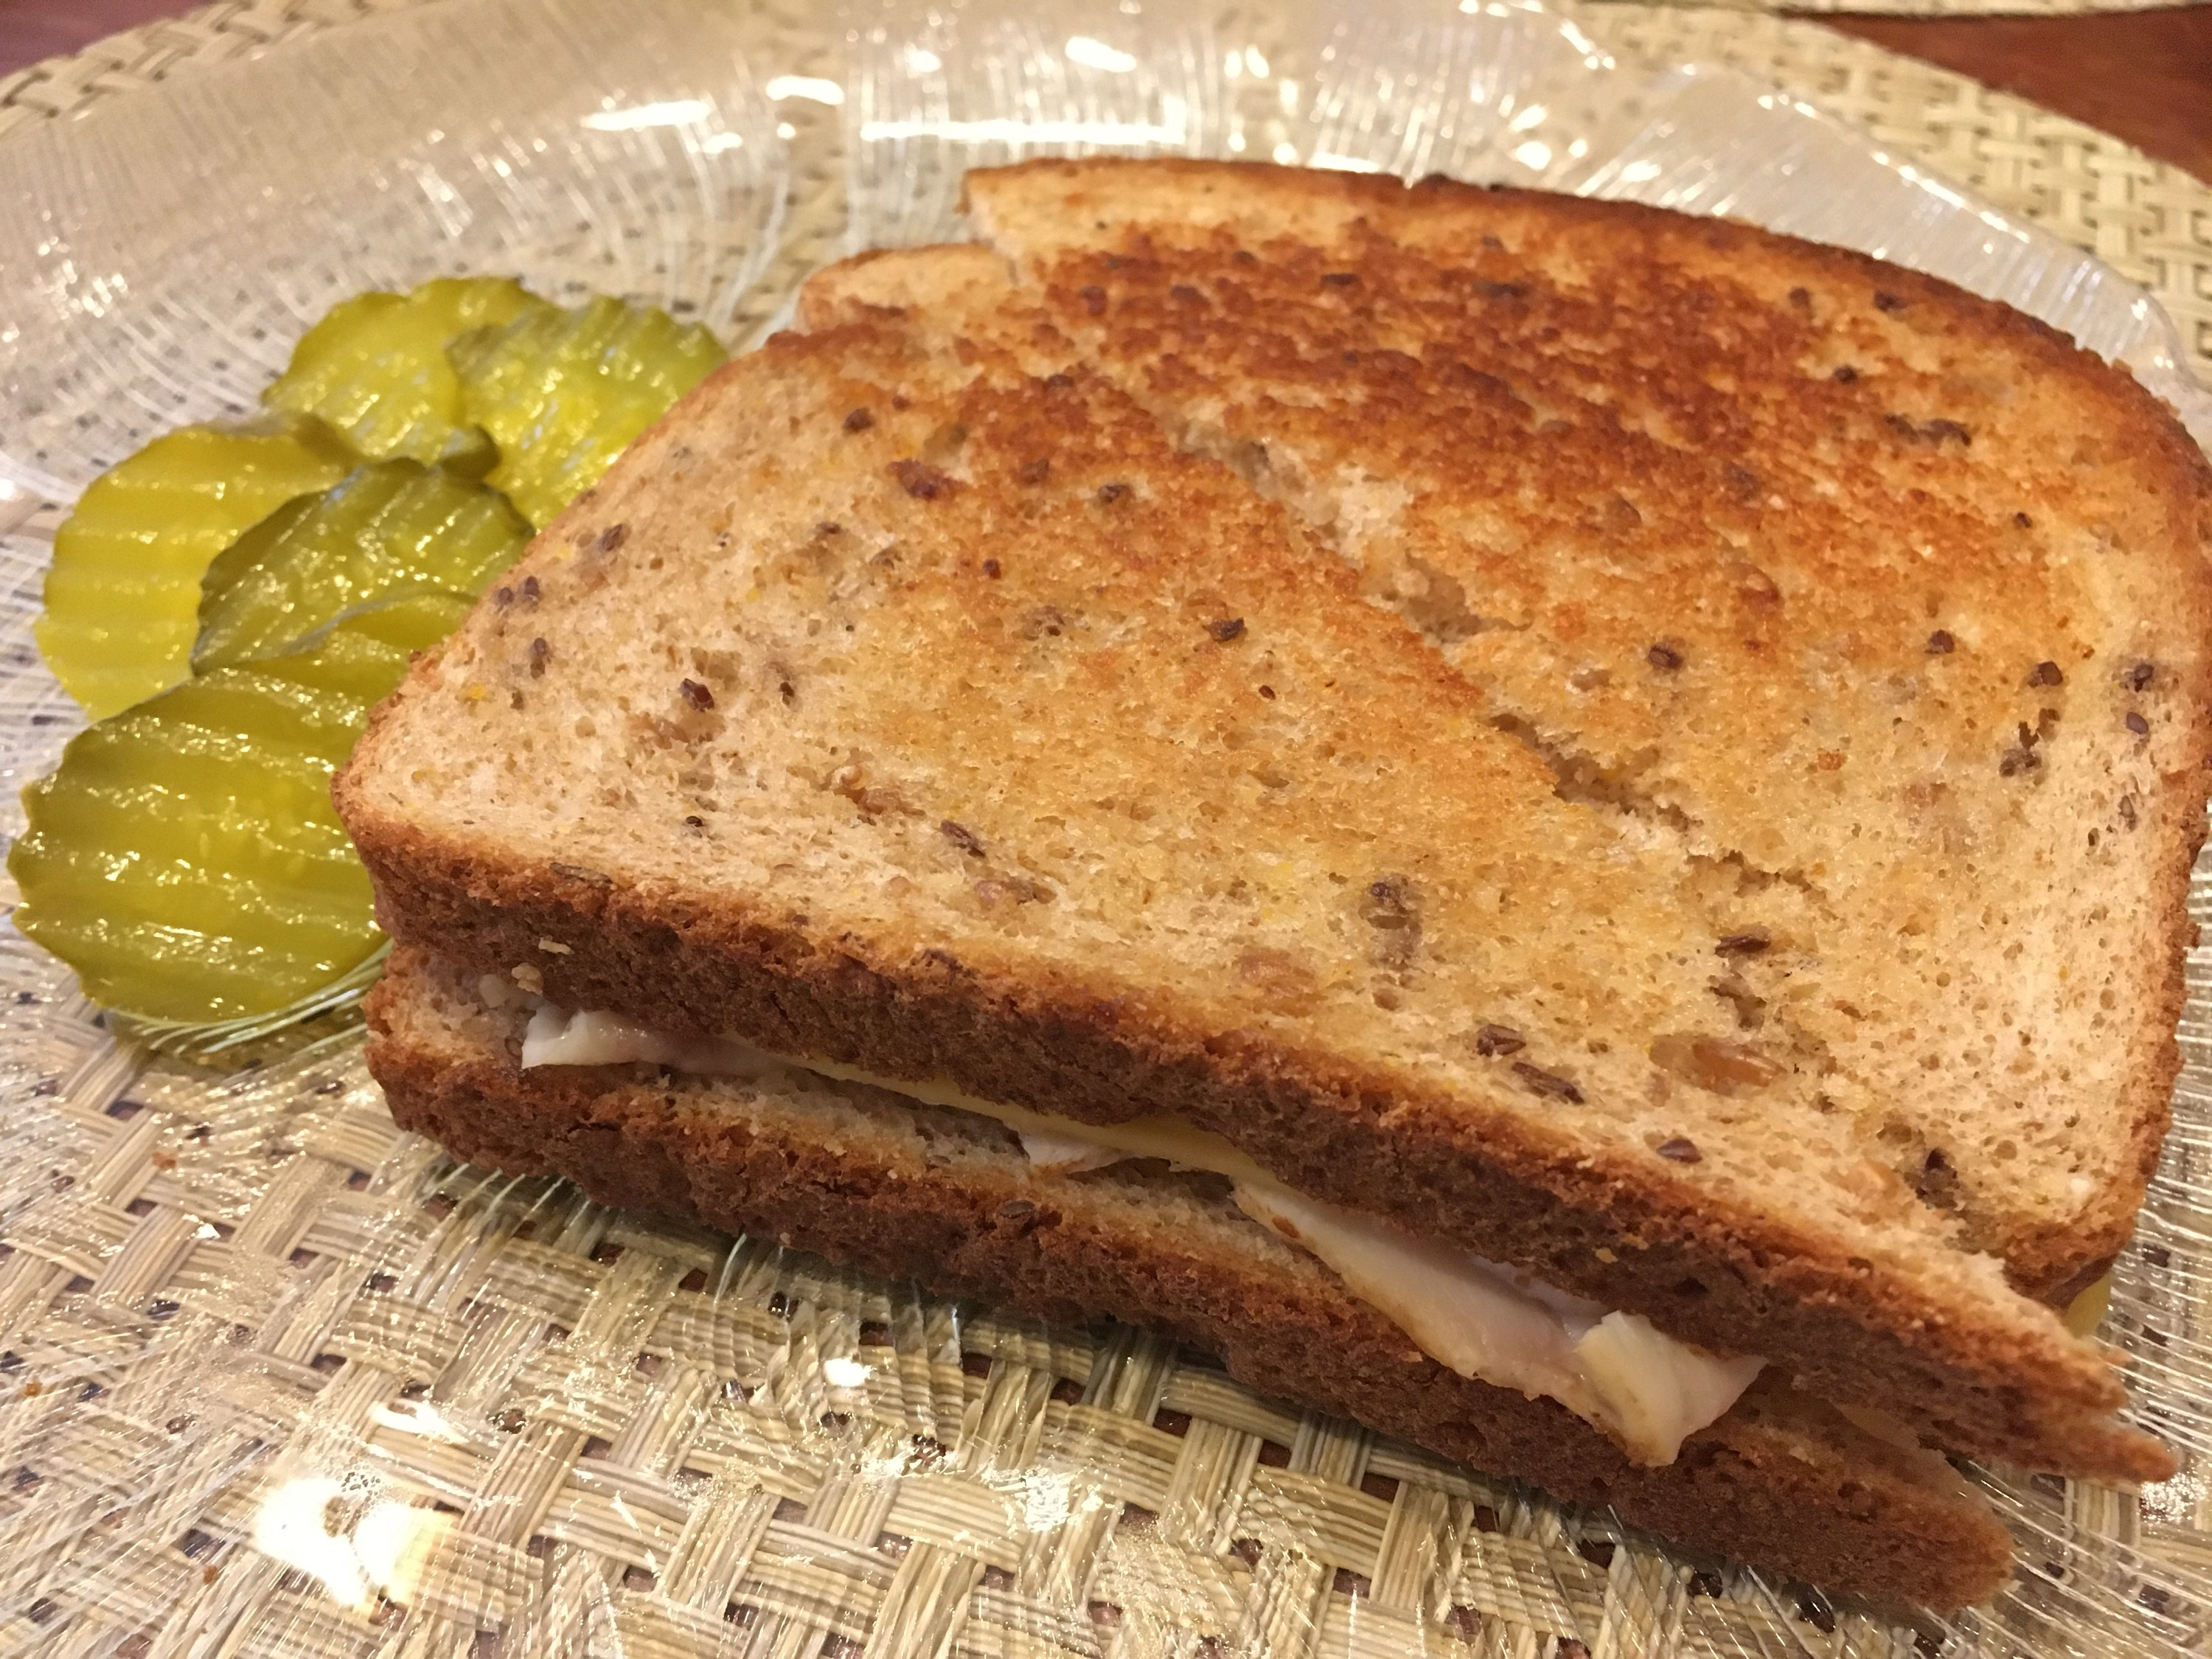 A simple toasted sandwich with two pickle slices